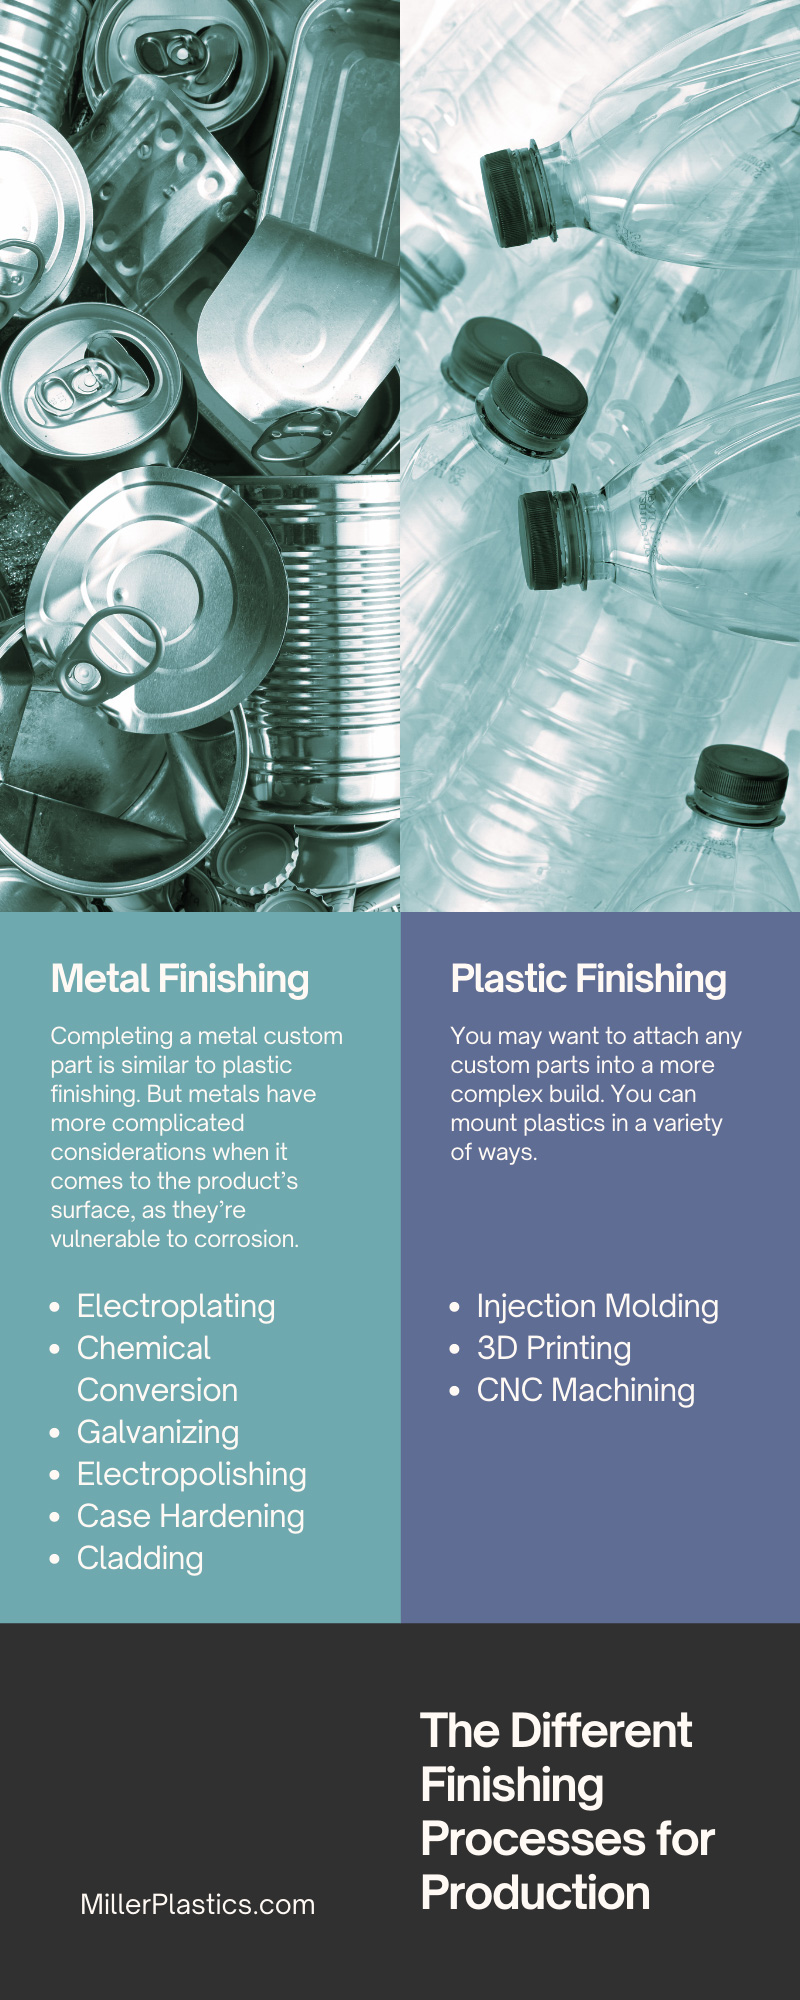 The Different Finishing Processes for Production